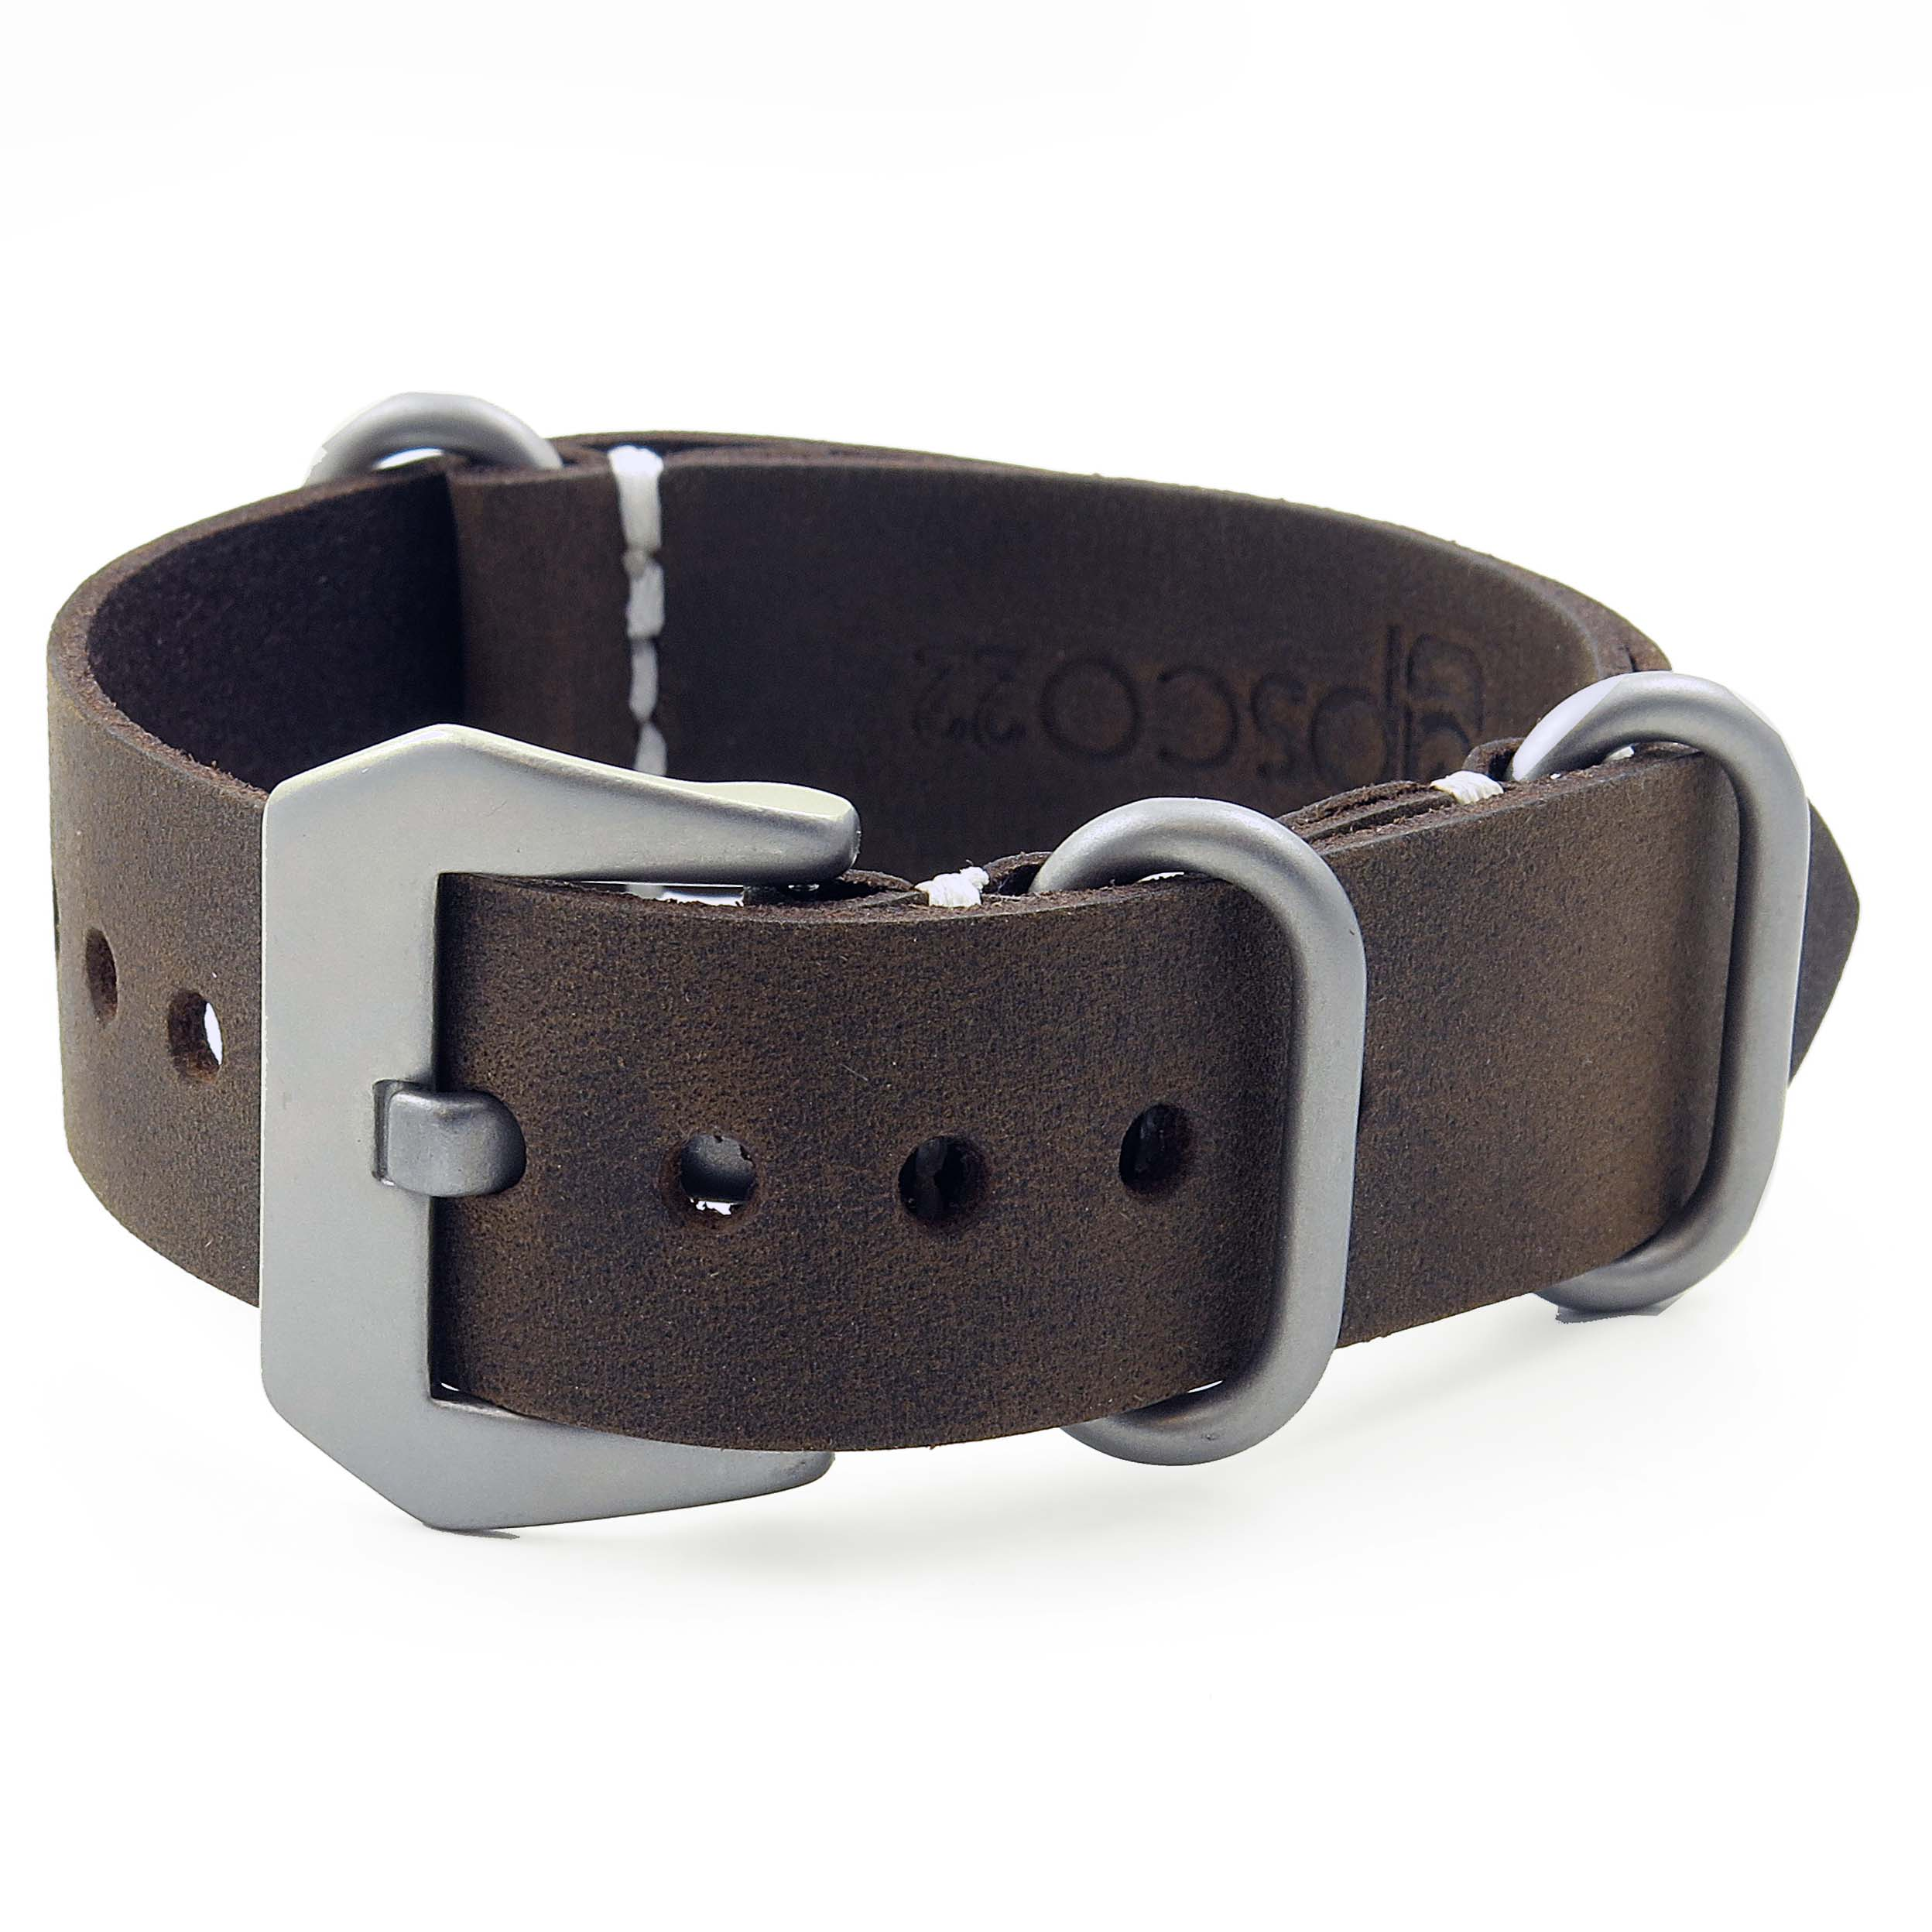 4733c5b5f16 ... Leather NATO Strap with Matte Black Buckle in +. Next